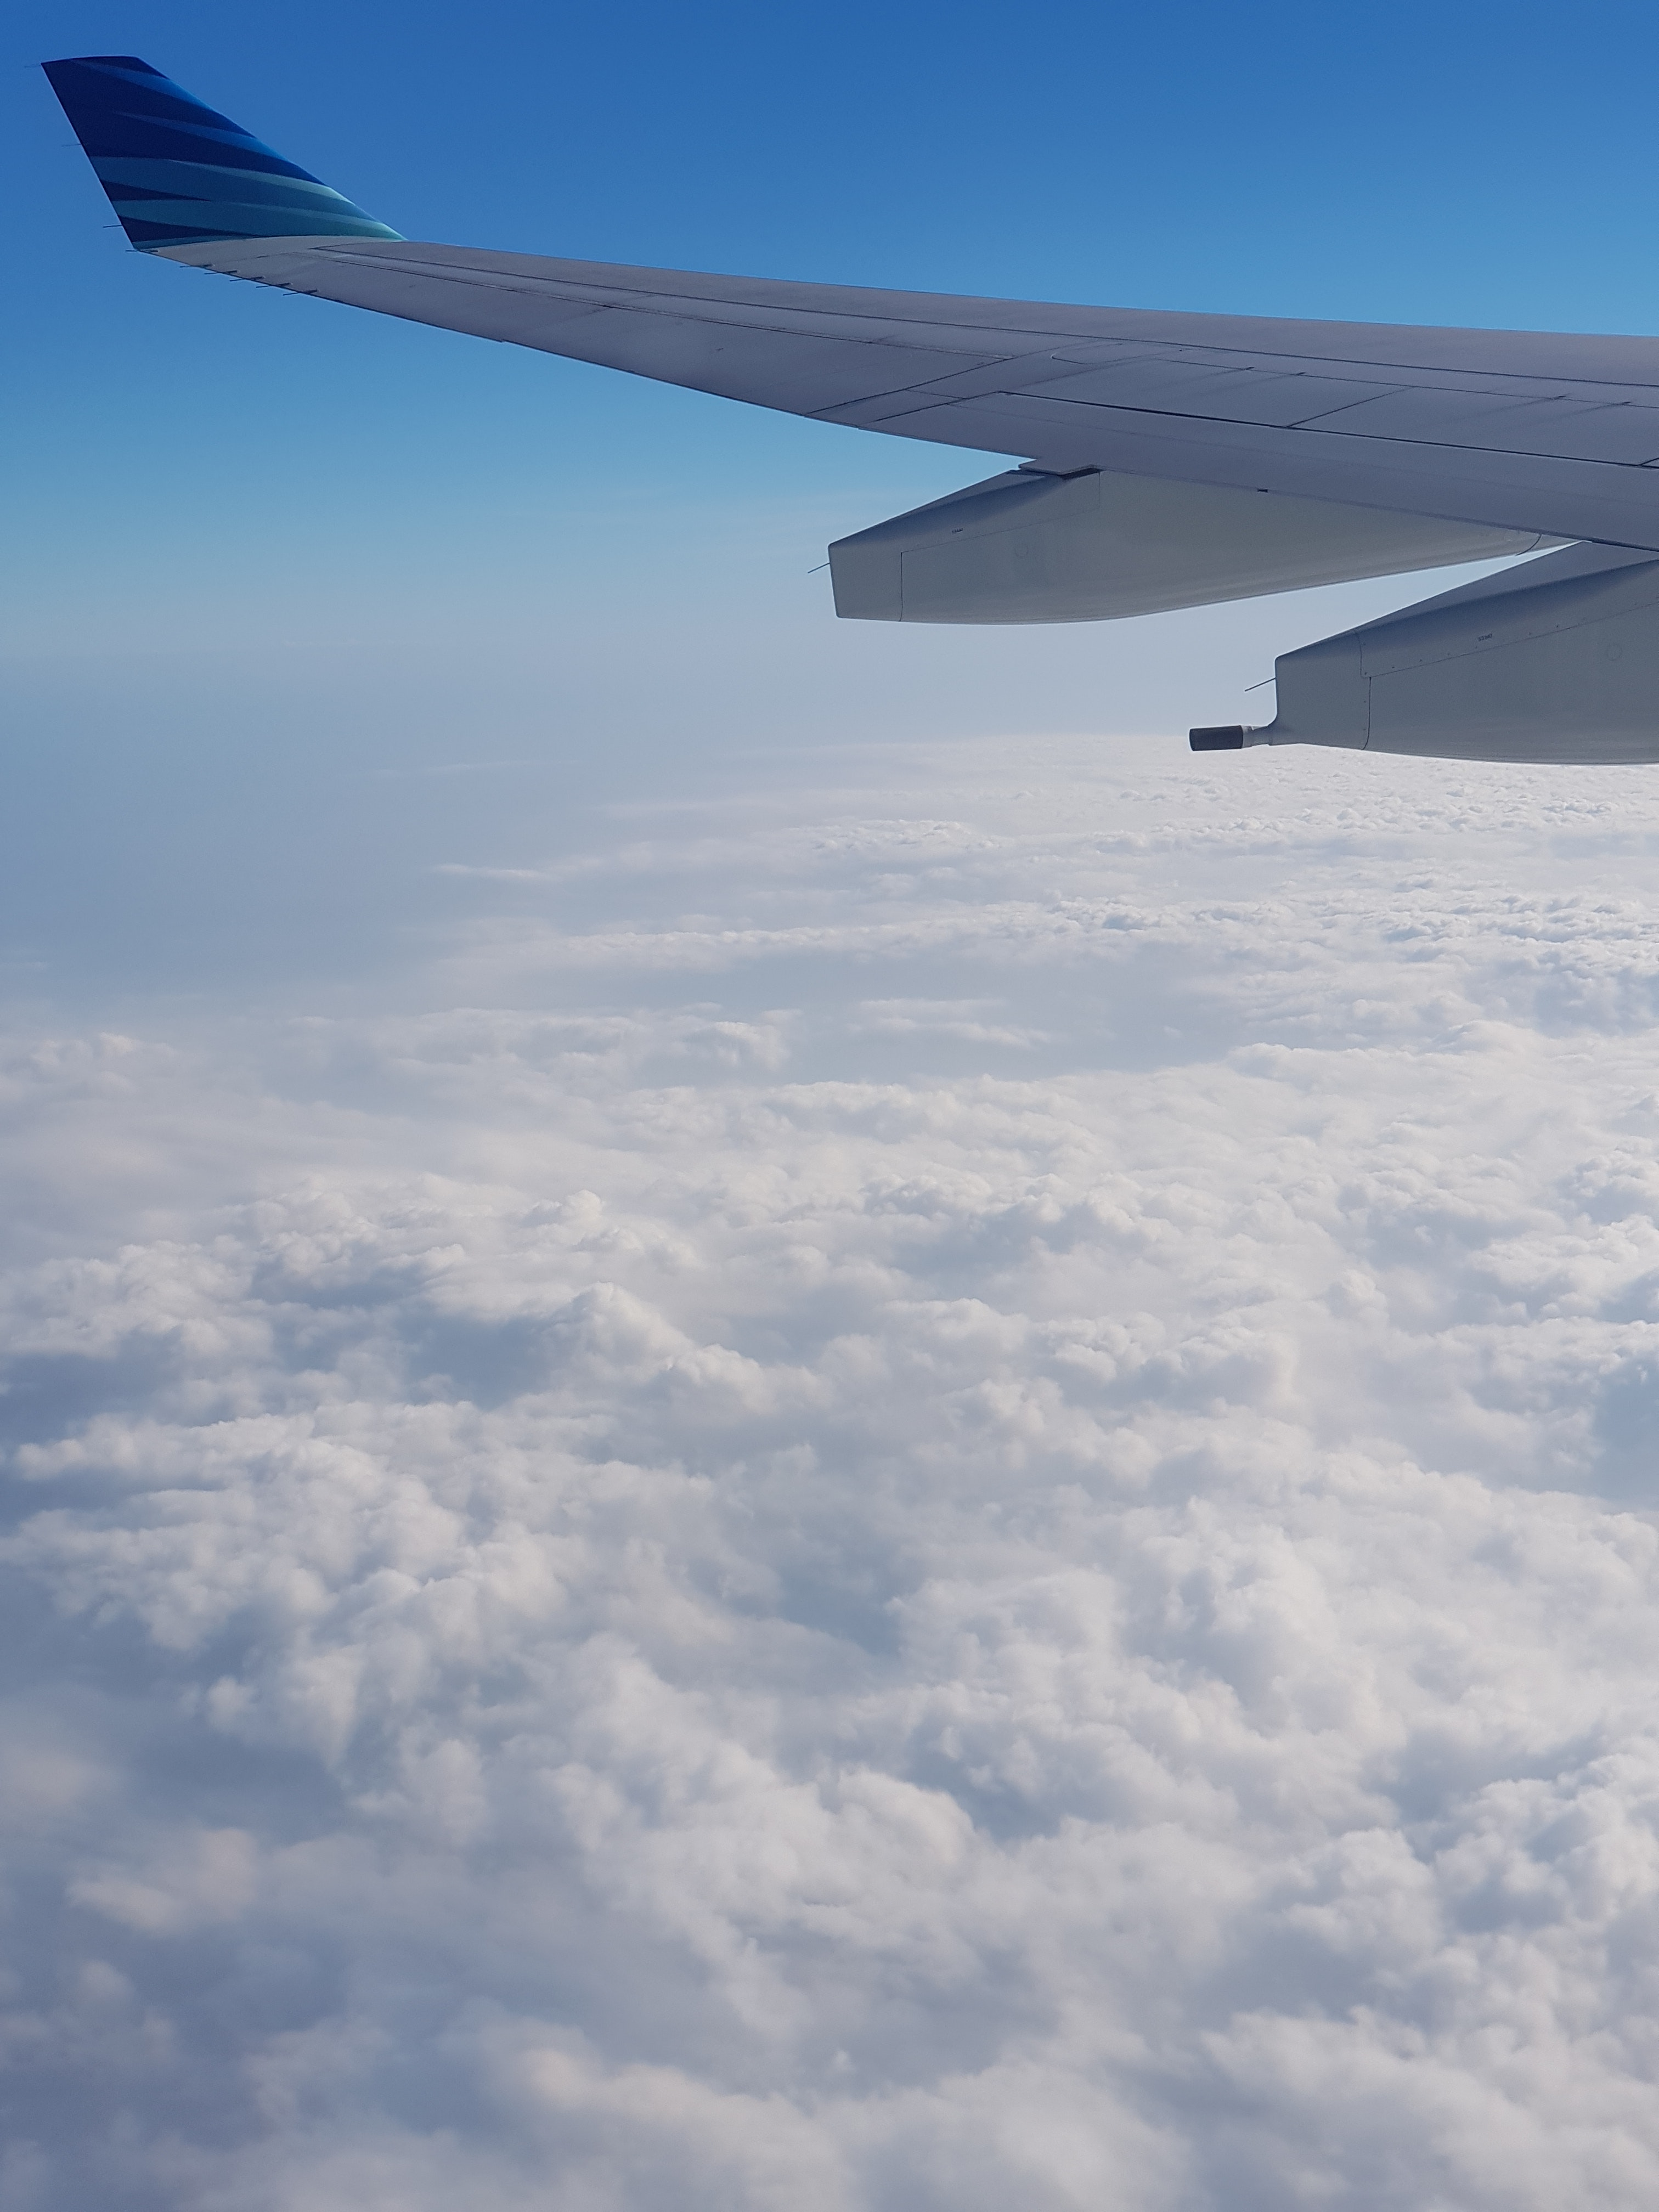 Free stock photo of aircraft wing, blue sky, cloud